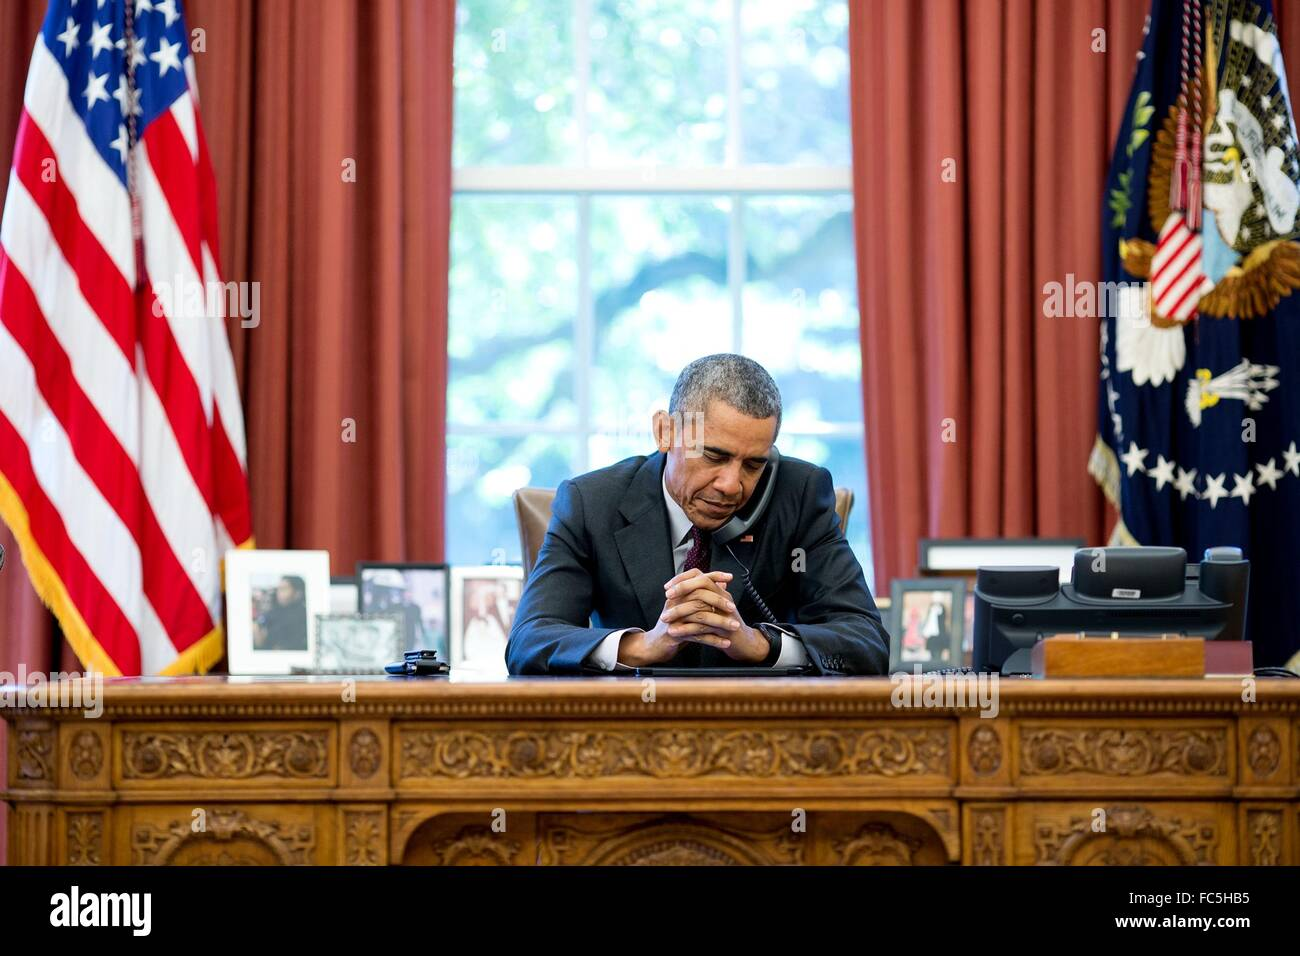 U.S President Barack Obama listens to a prayer during a phone call with pastors on his birthday in the Oval Office - Stock Image